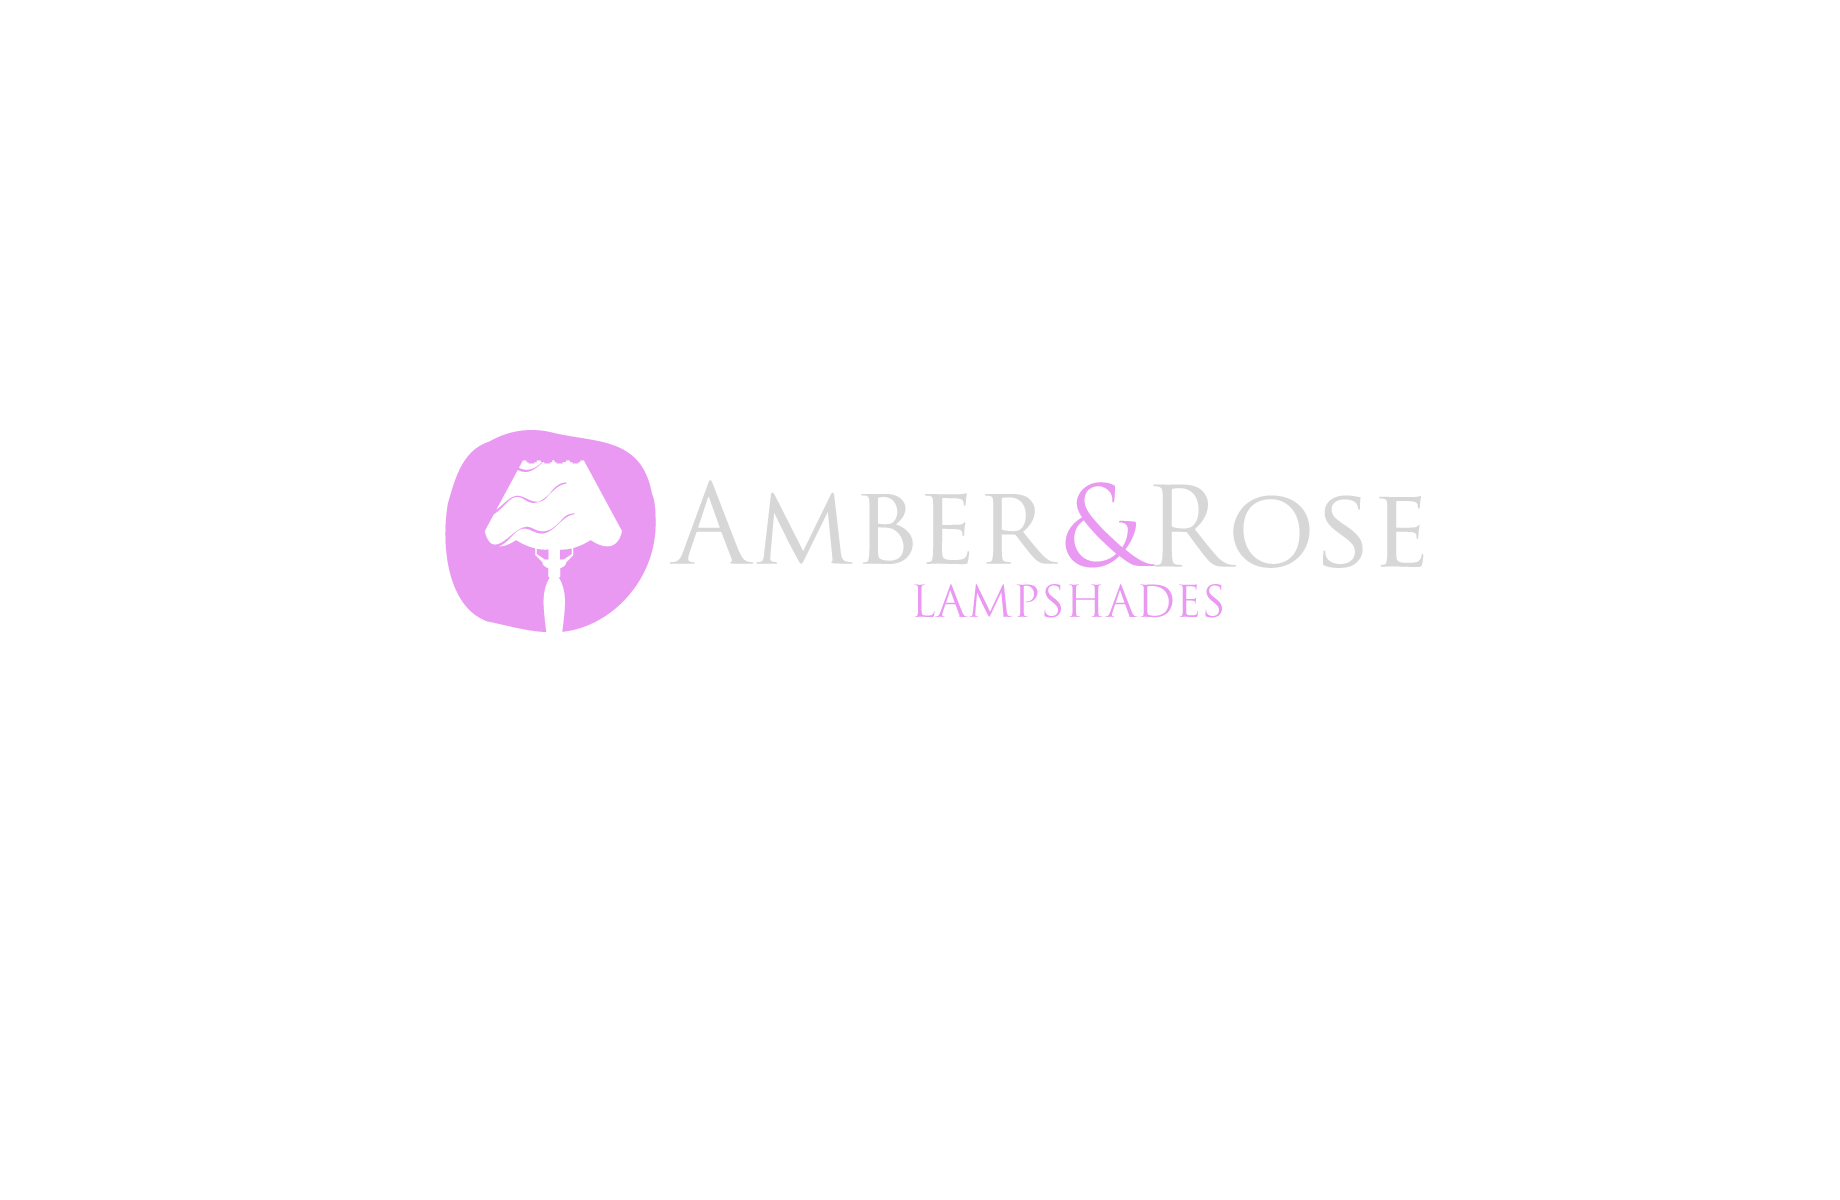 Logo Design by Jan Chua - Entry No. 27 in the Logo Design Contest Creative Logo Design for Amber & Rose.